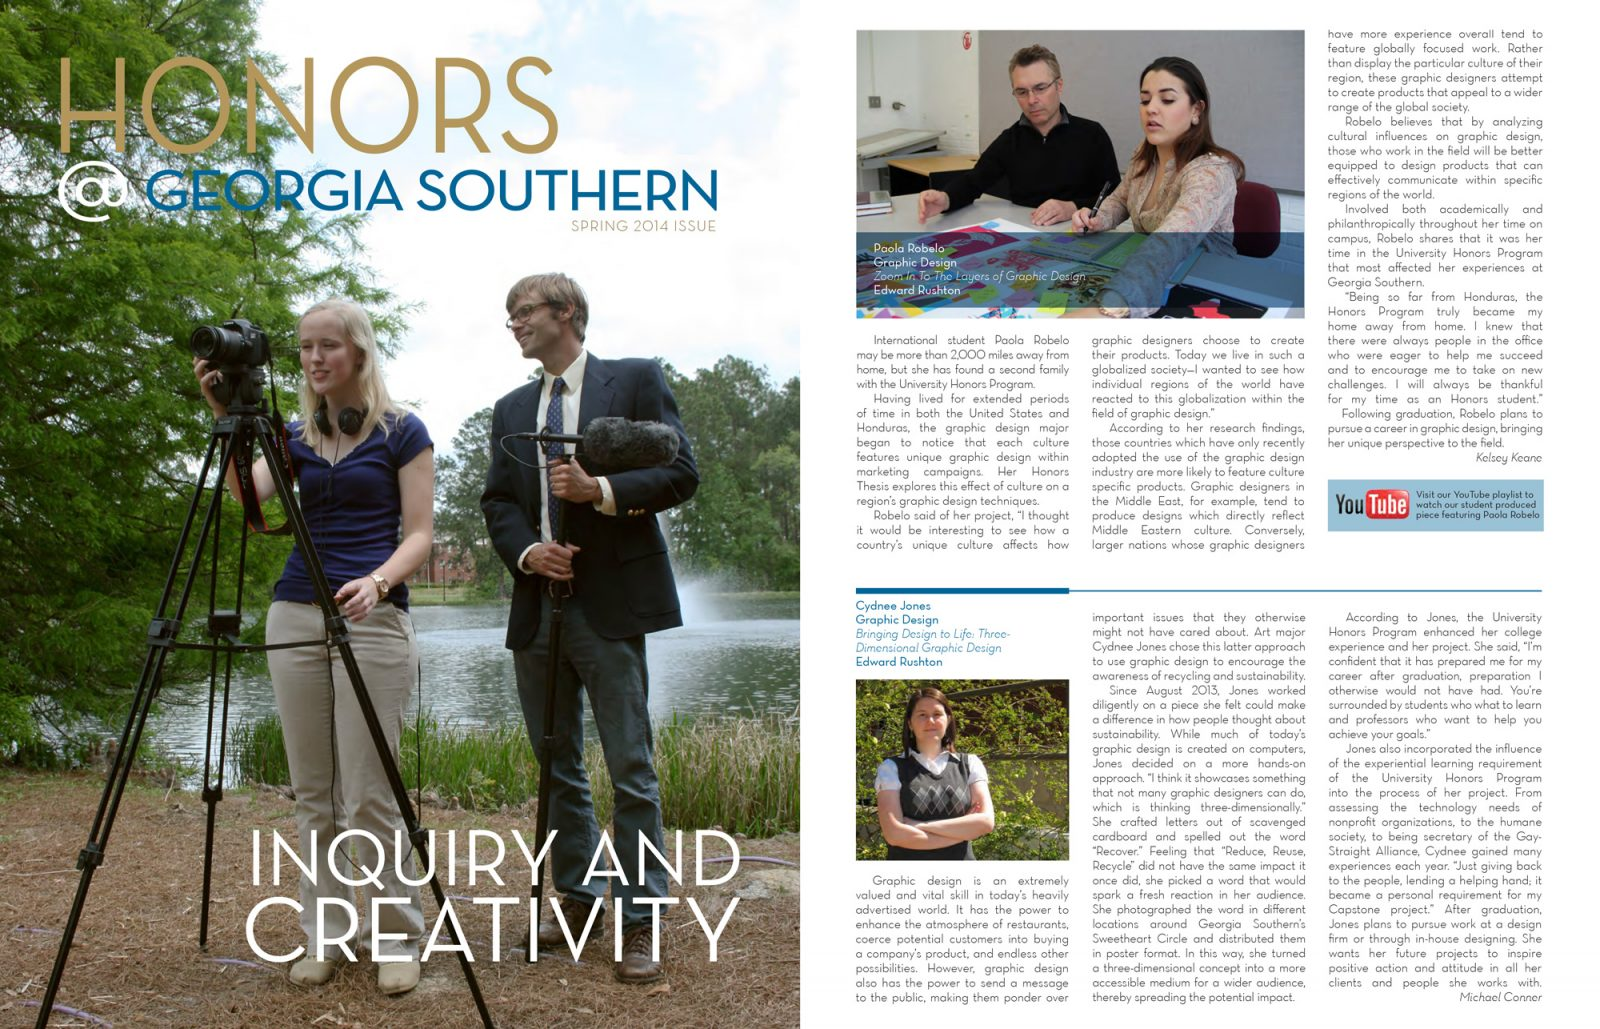 Spring 2014 Honors @ Georgia Southern